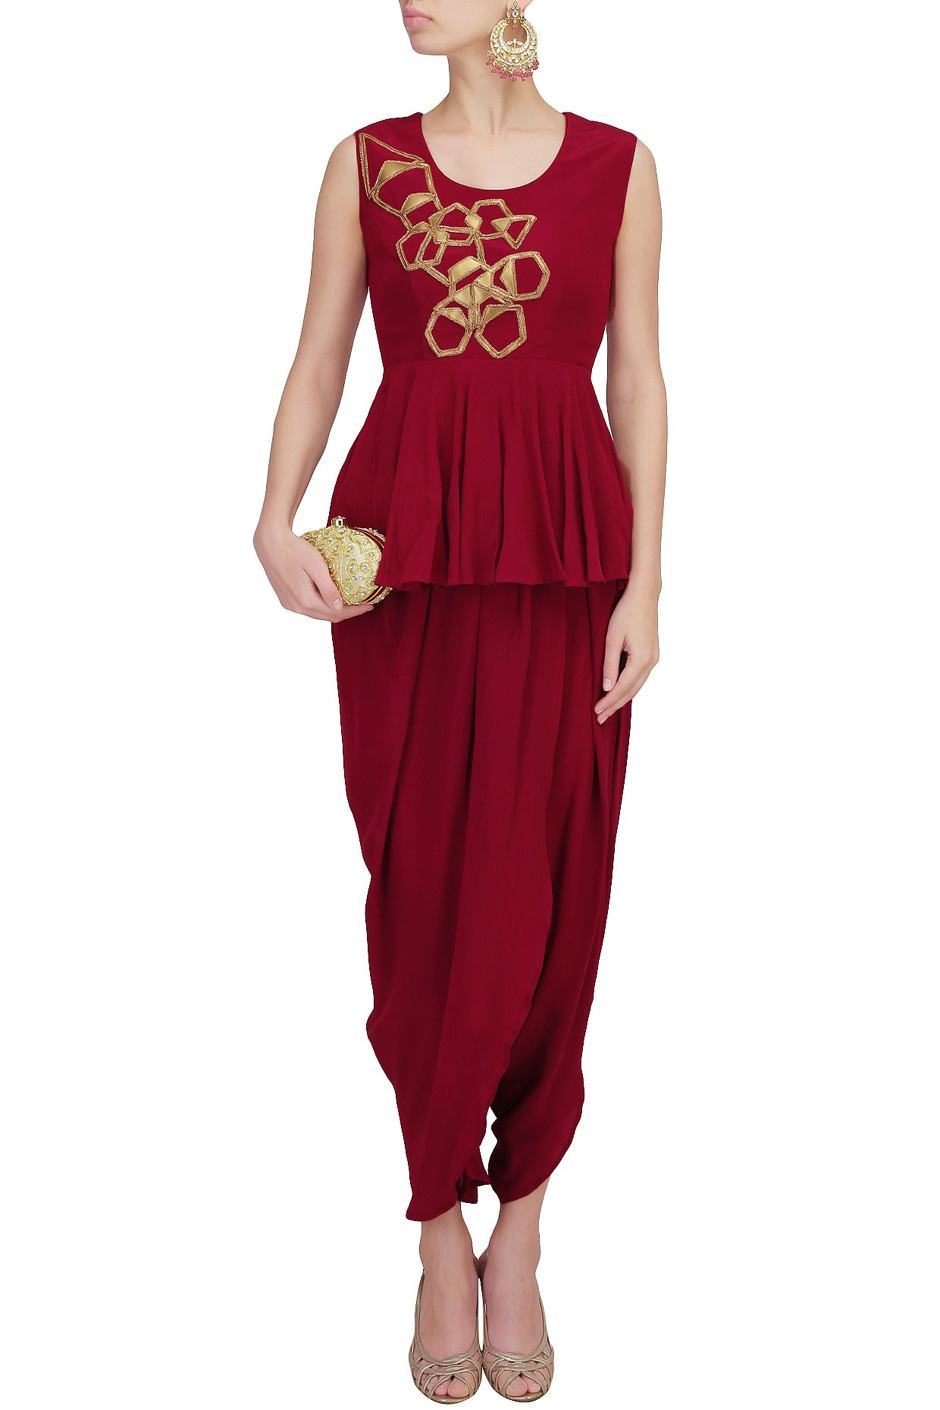 ethnic outfit